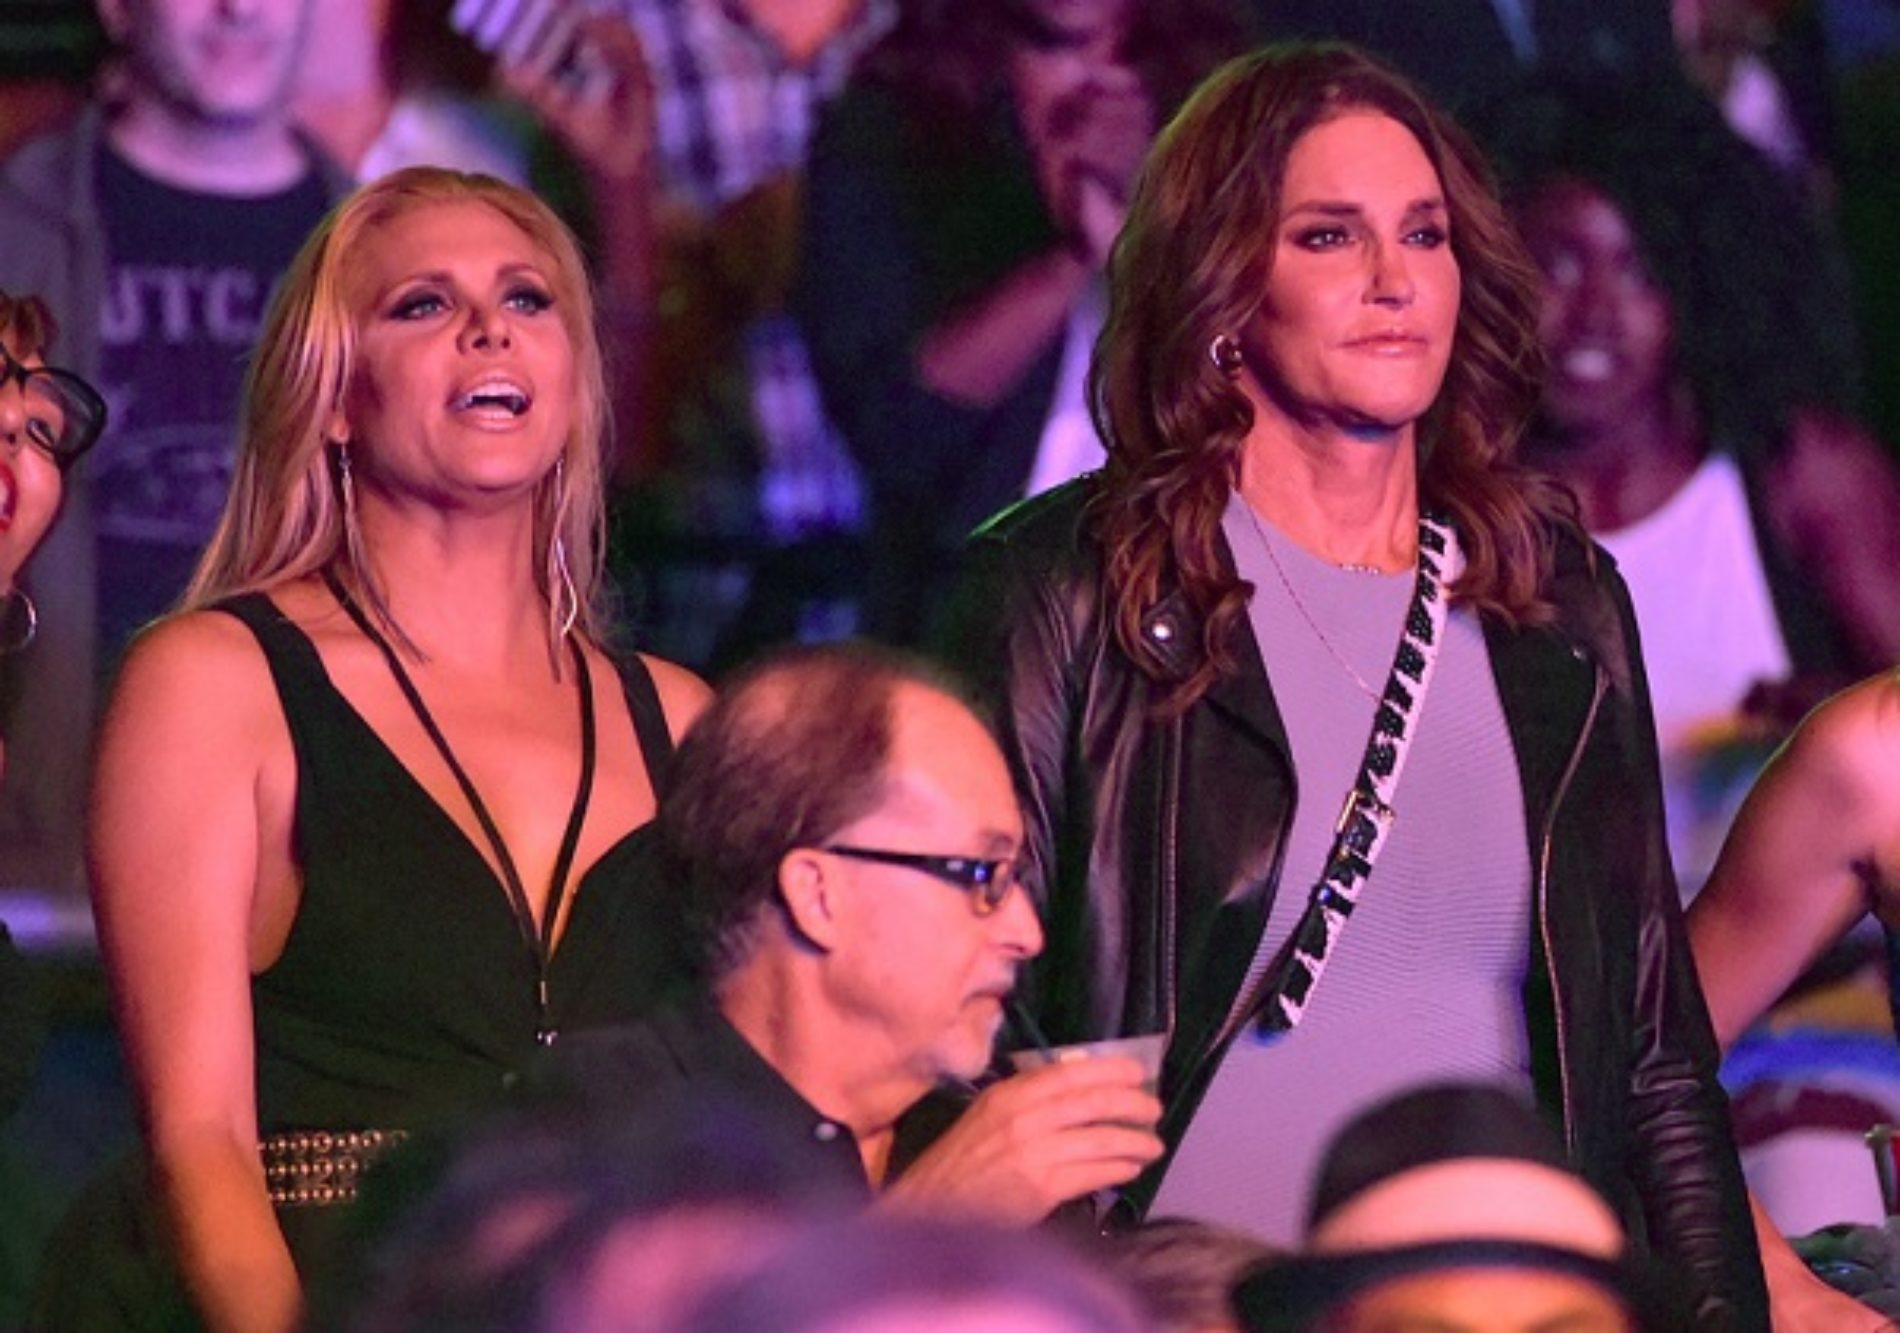 Trans actress Candis Cayne admits Caitlyn Jenner not 'the perfect spokesperson' amidst reports of 'I Am Cait' cancellation